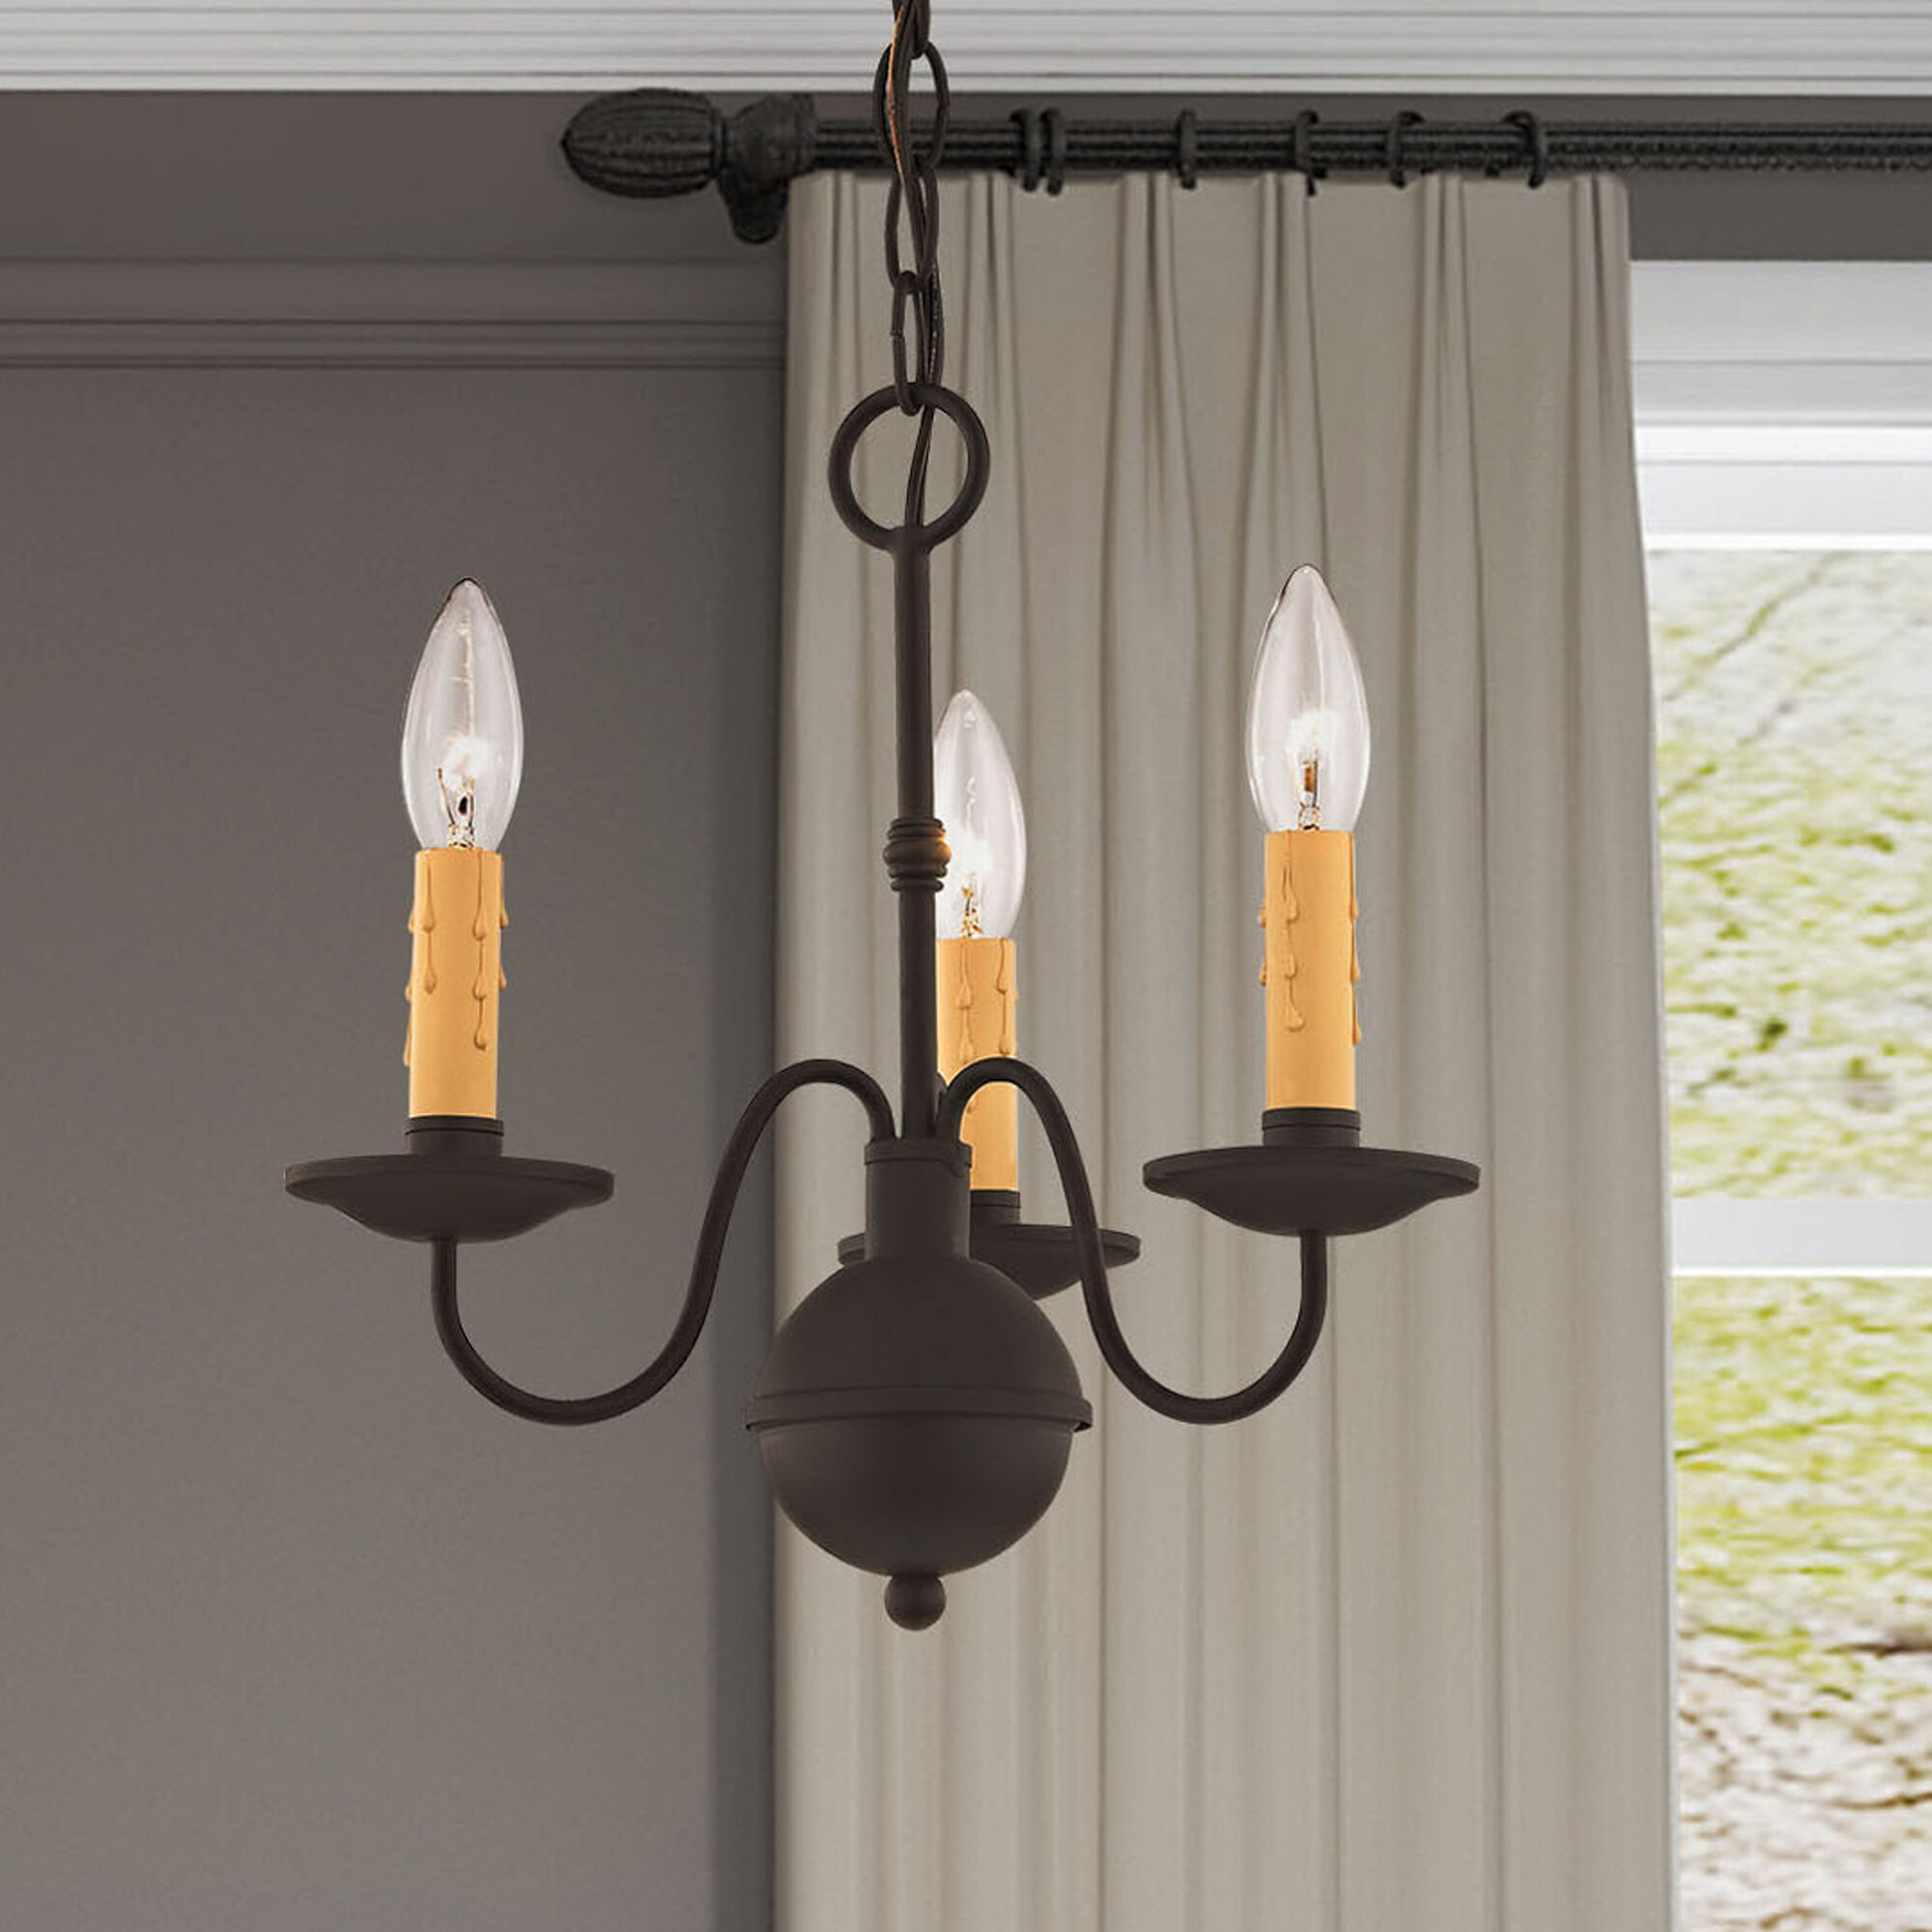 Darby Home Co Eberhart 3 Light Candle Style Classic Traditional Chandelier Reviews Wayfair